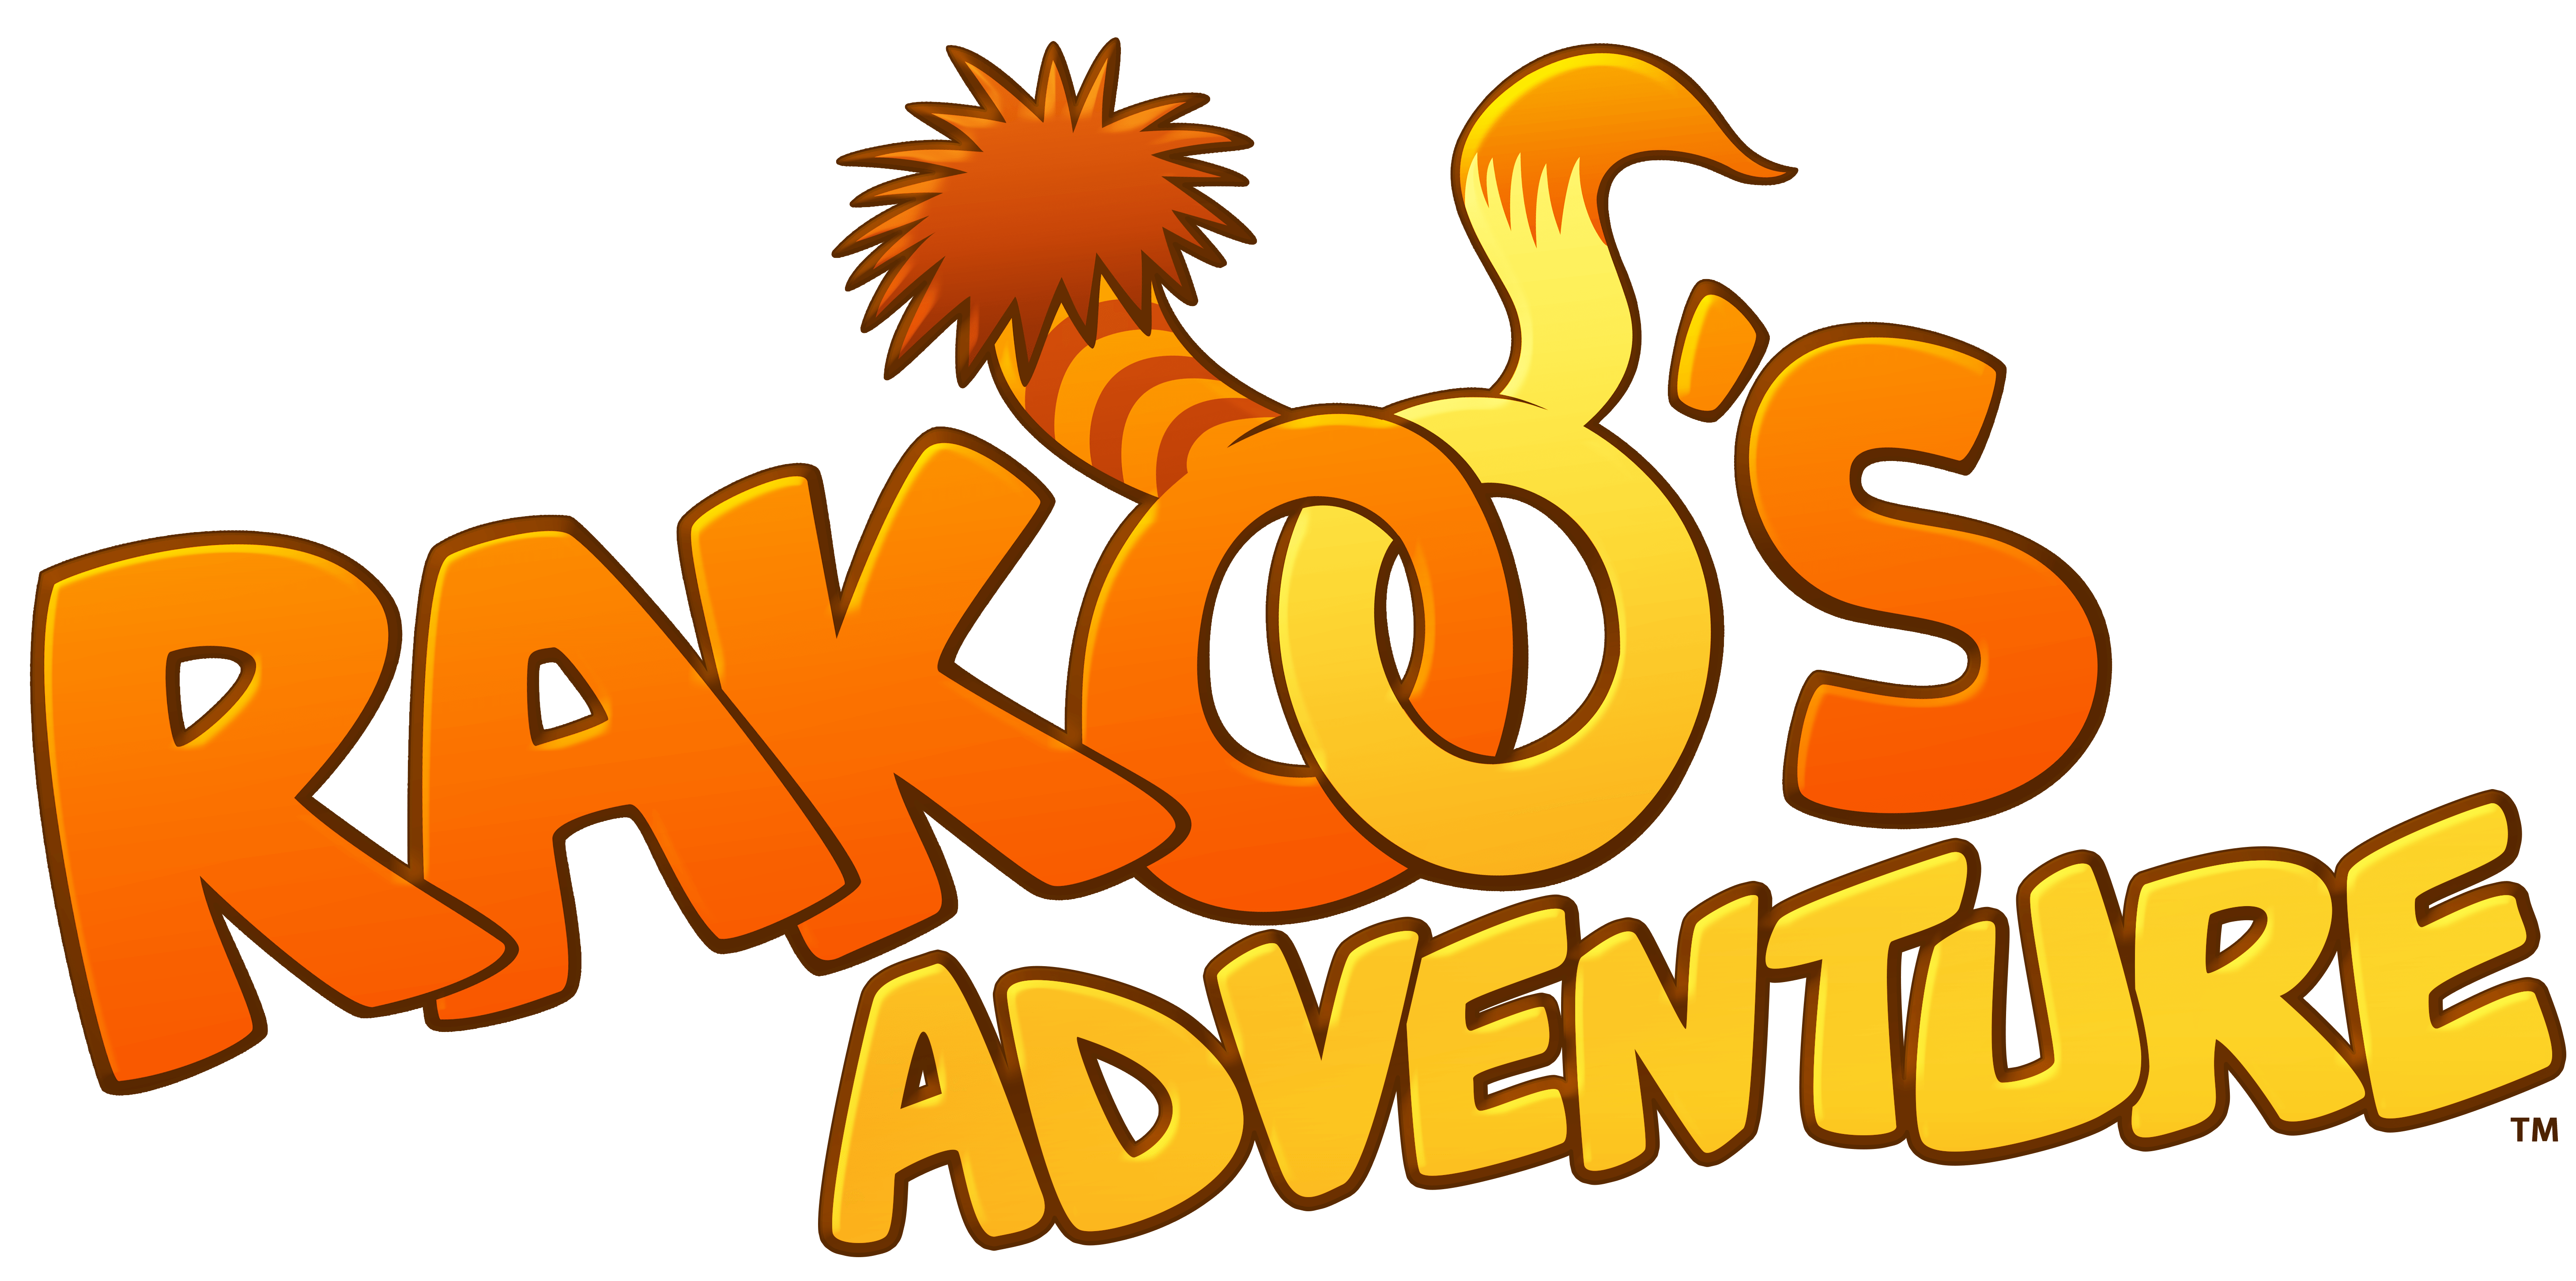 Rakoo's Adventure Mobile Game Updated by Playdigious